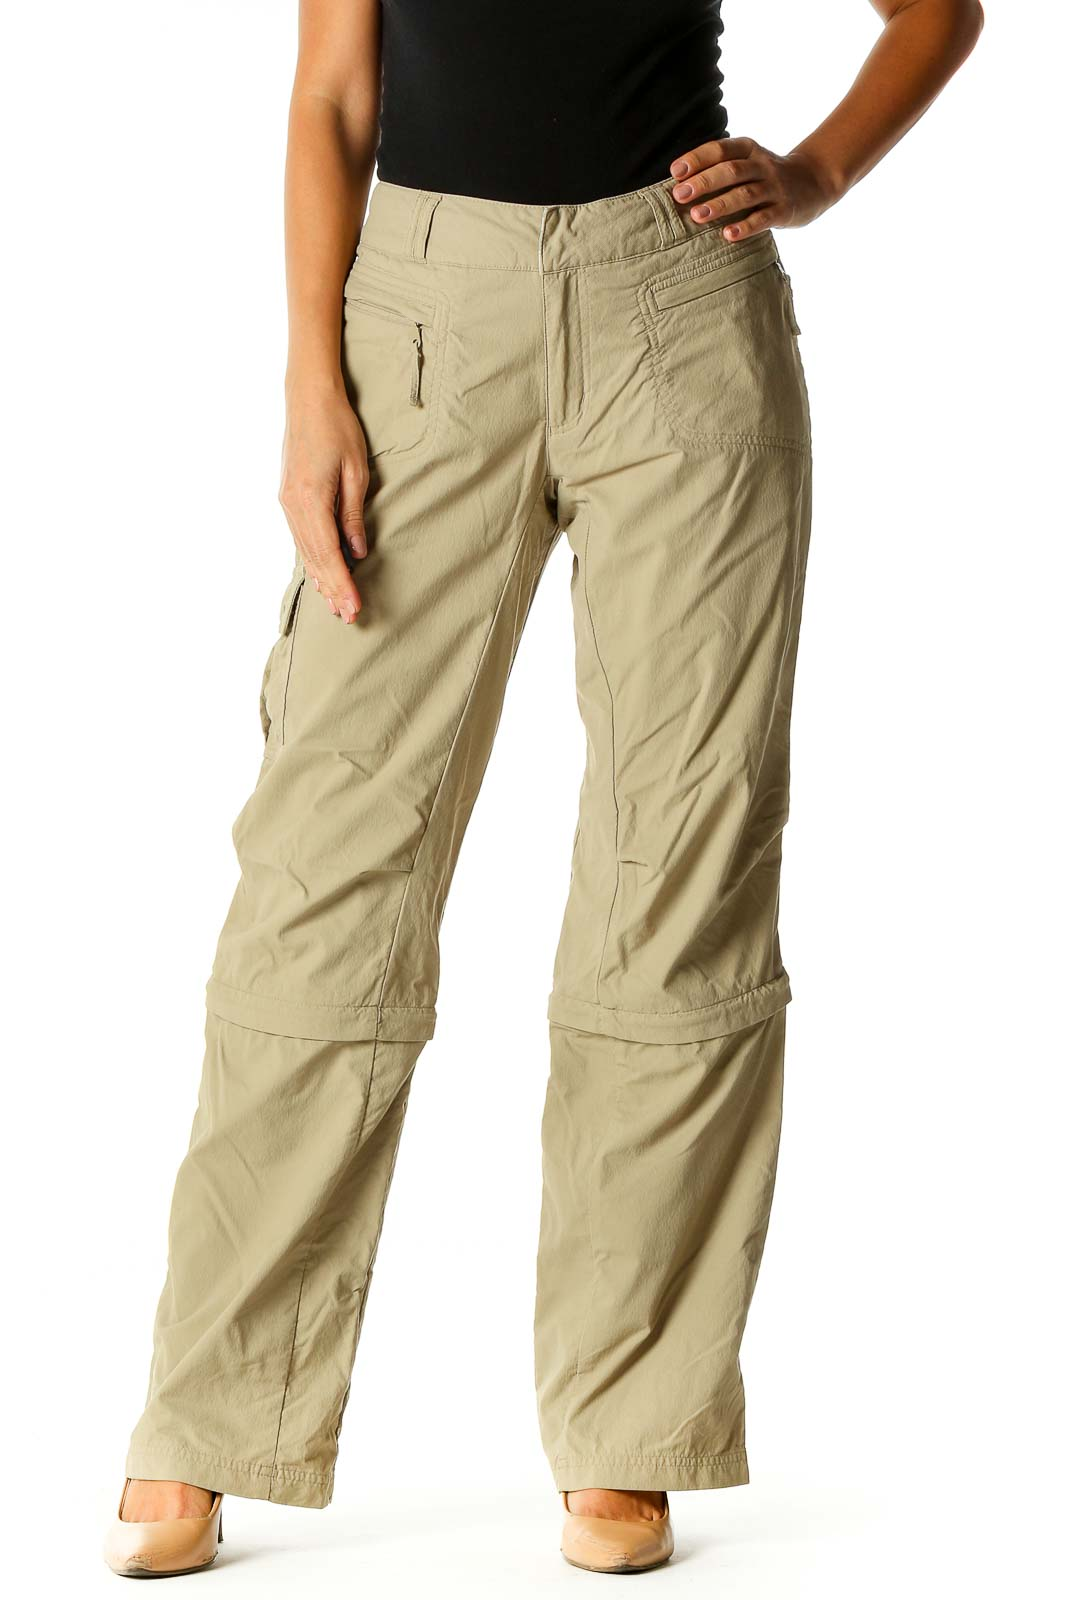 Beige Solid Casual Cargos Pants Front